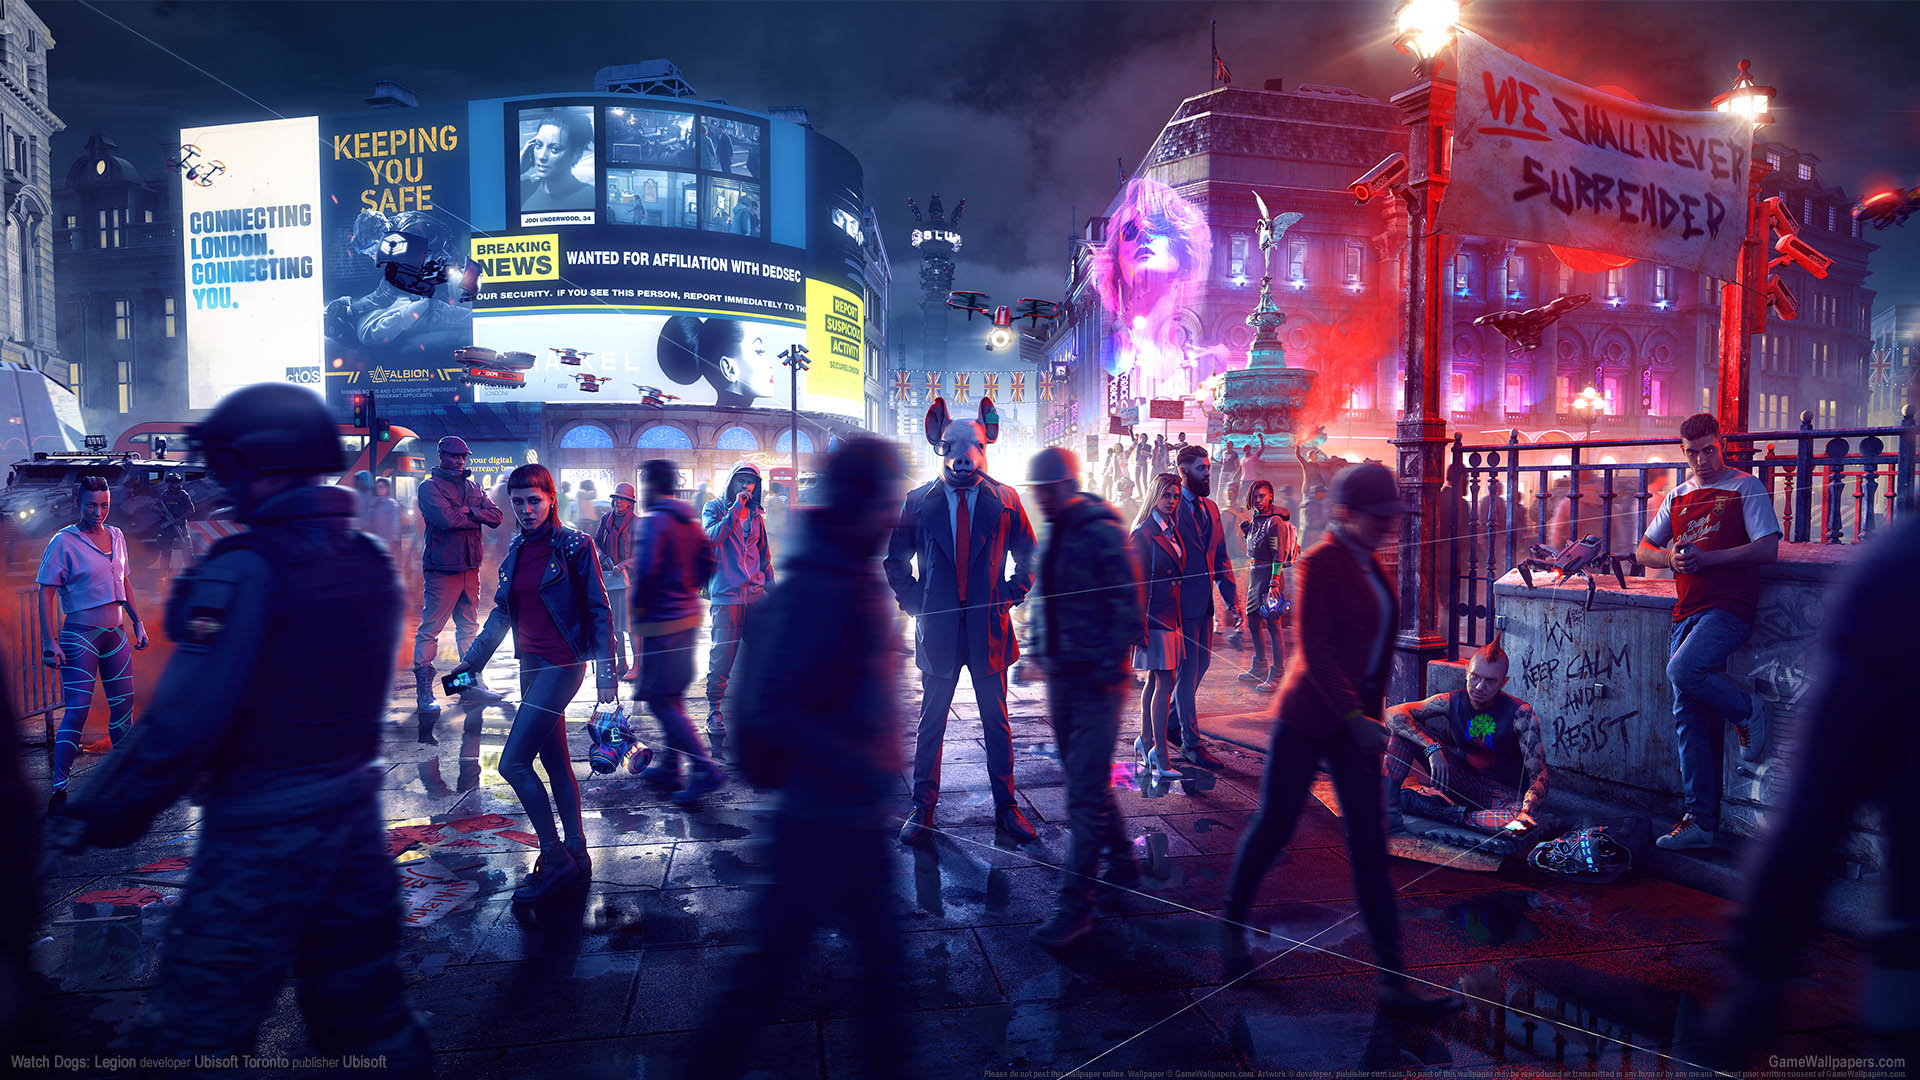 Watch Dogs: Legion fondo de escritorio 01 1920x1080